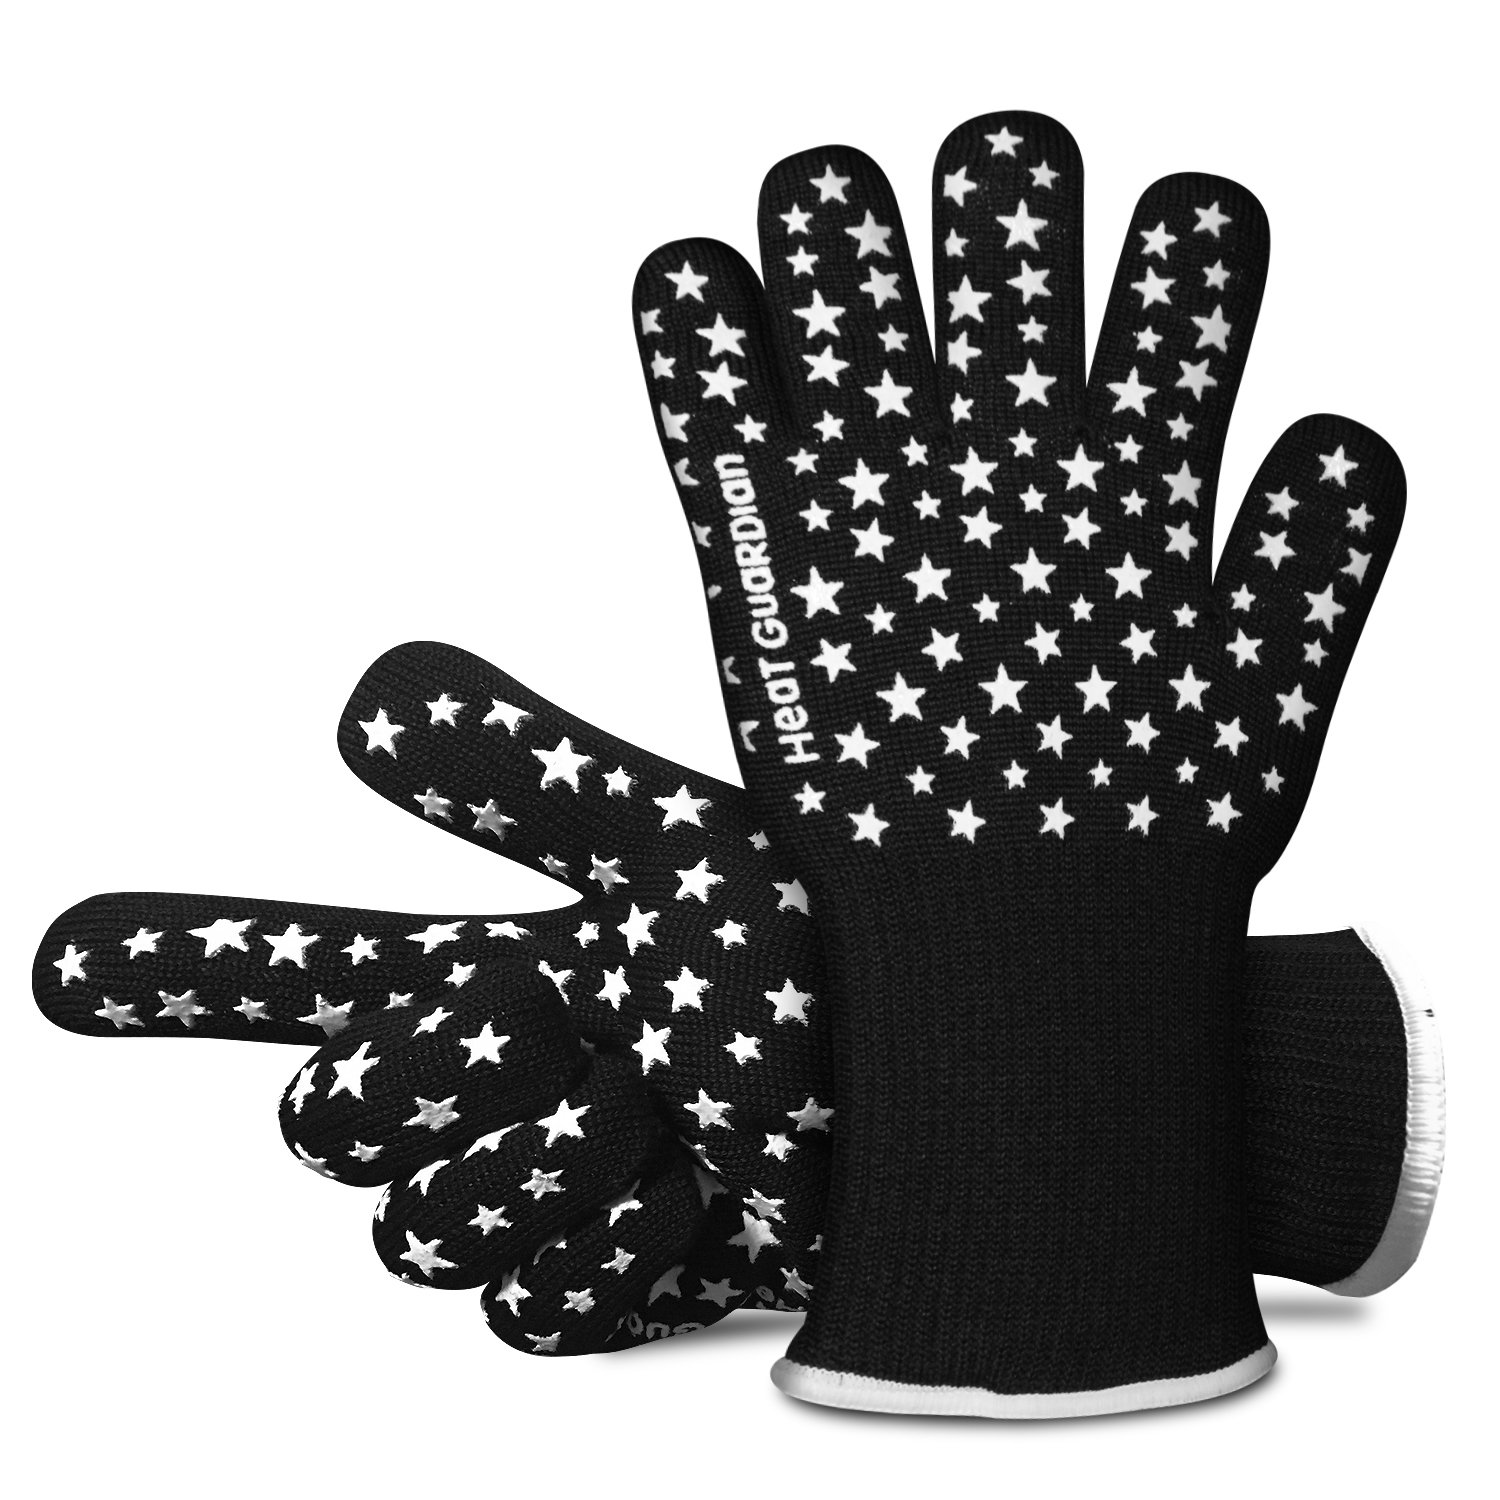 Heat Guardian Heat Resistant Gloves – Protective Gloves Withstand Heat Up To 932℉ – Use As Oven Mitts, Pot Holders, Heat Resistant Gloves for Grilling